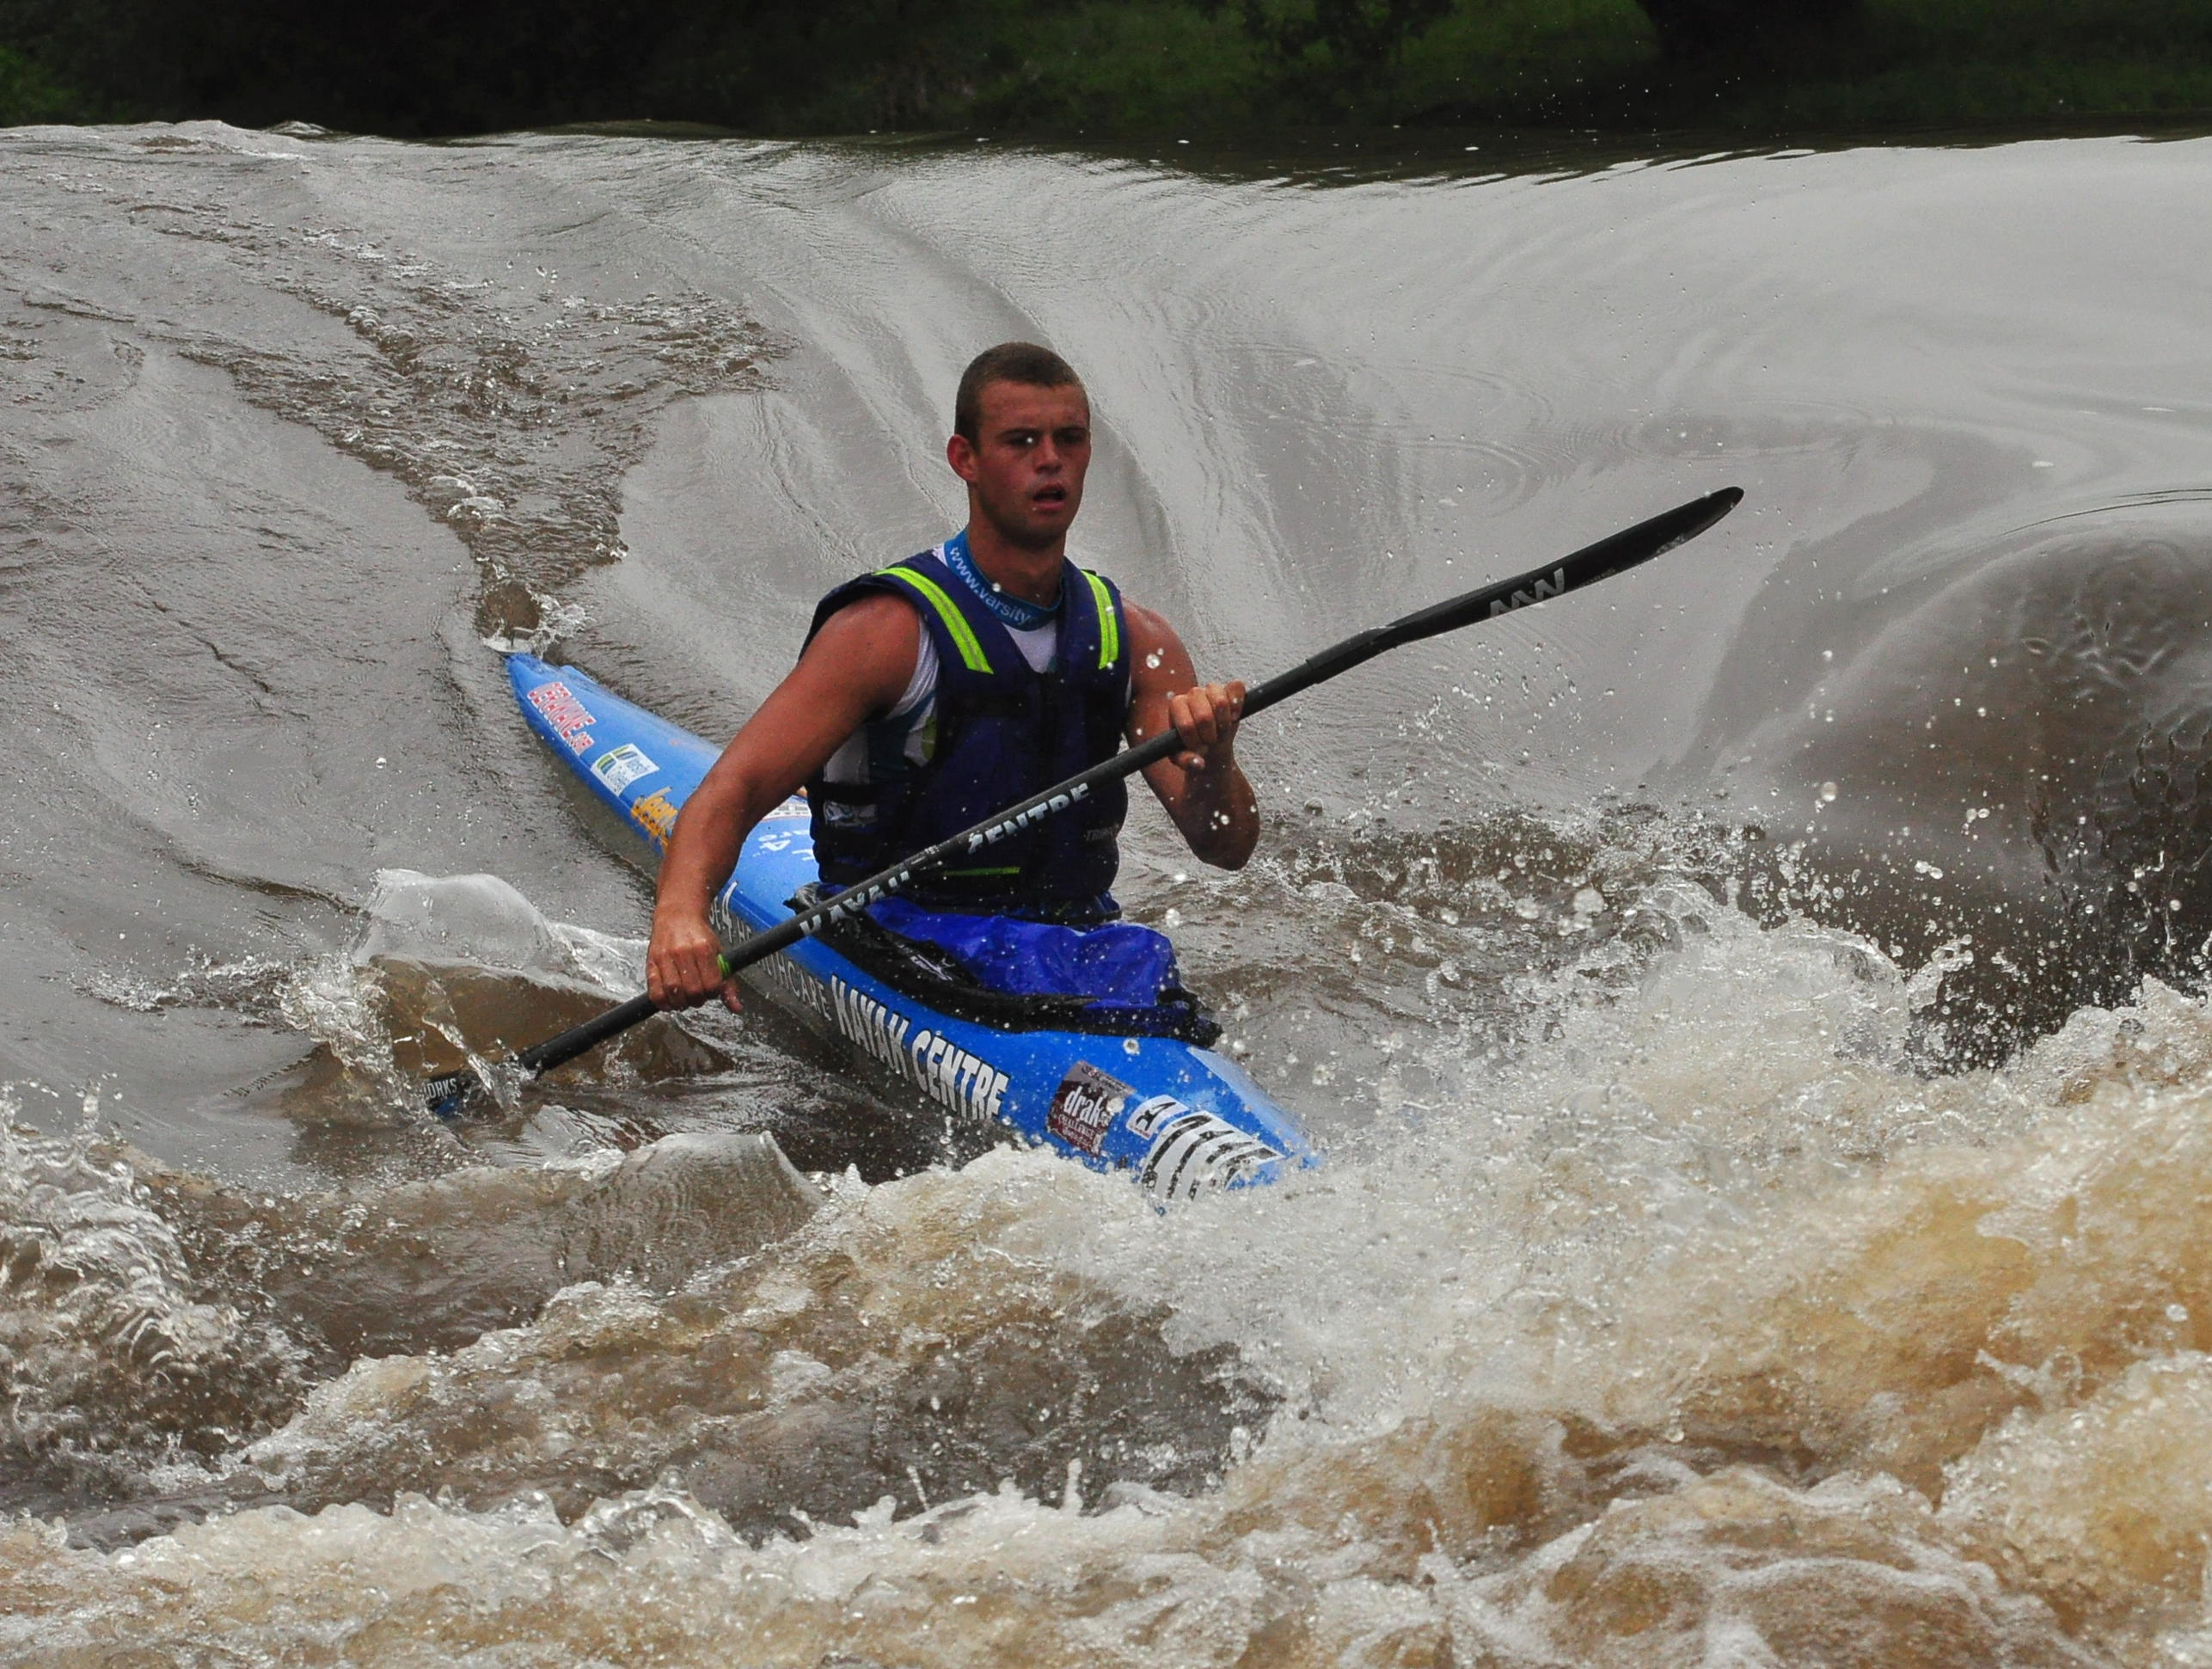 Grant van der Walt set a new day two record en route to his third